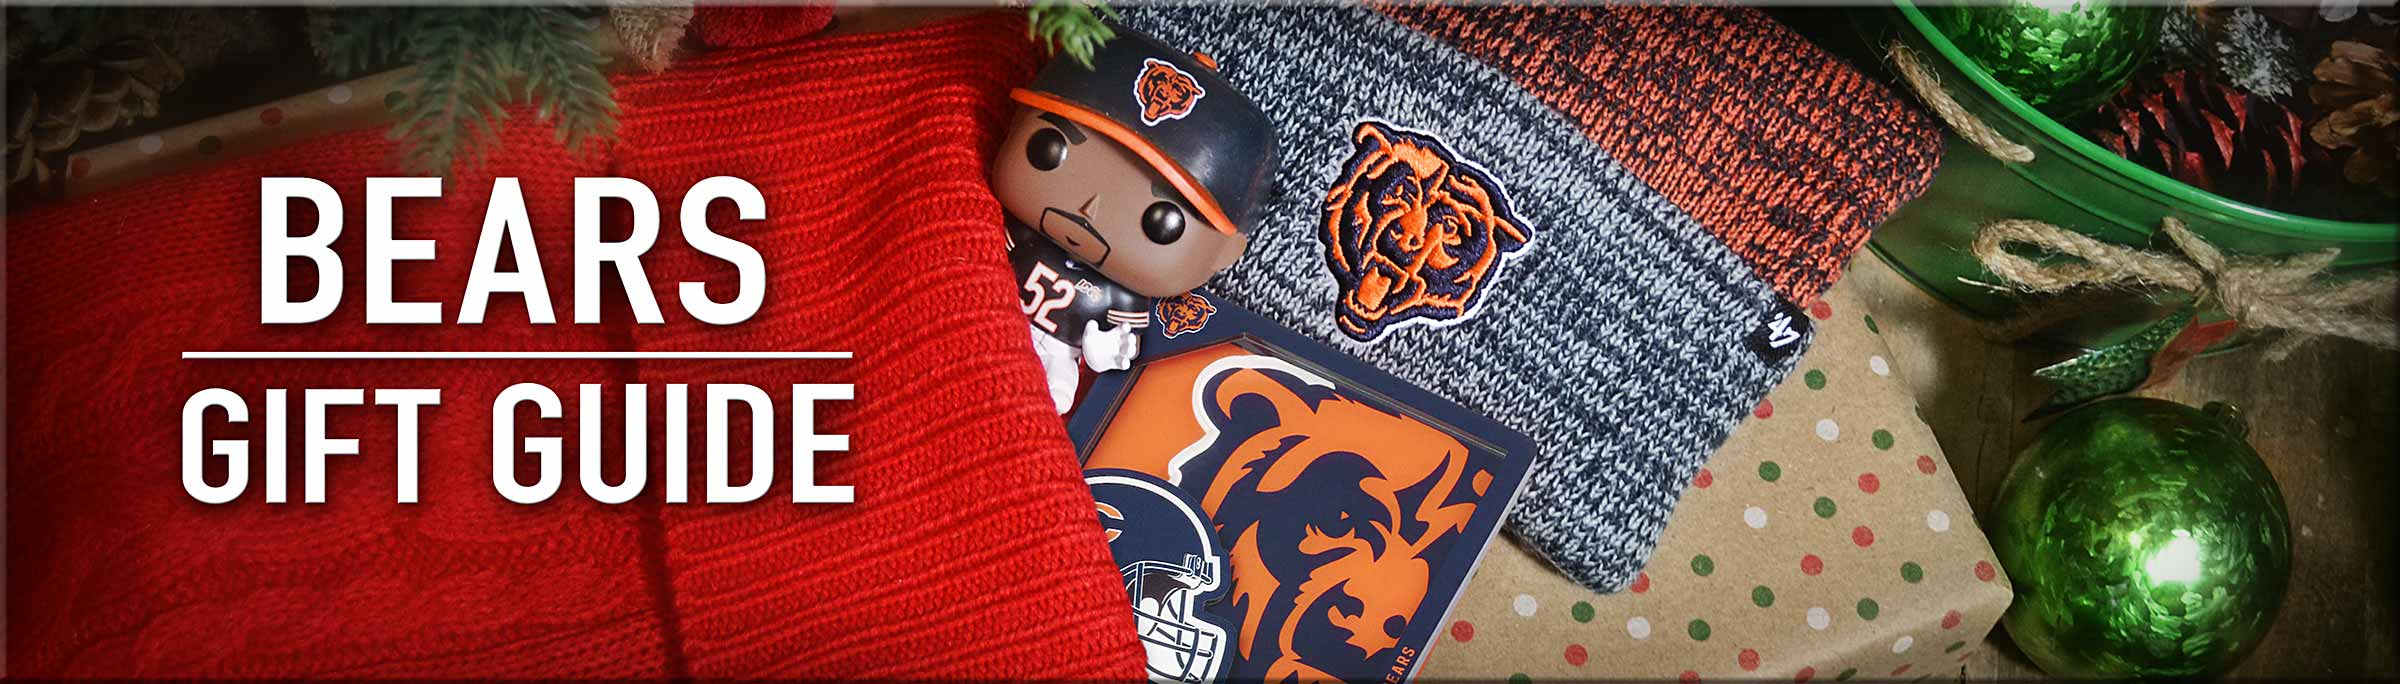 Chicago Bears Christmas Gift Guide - Everything you need for the Bears Fan on your shopping list.